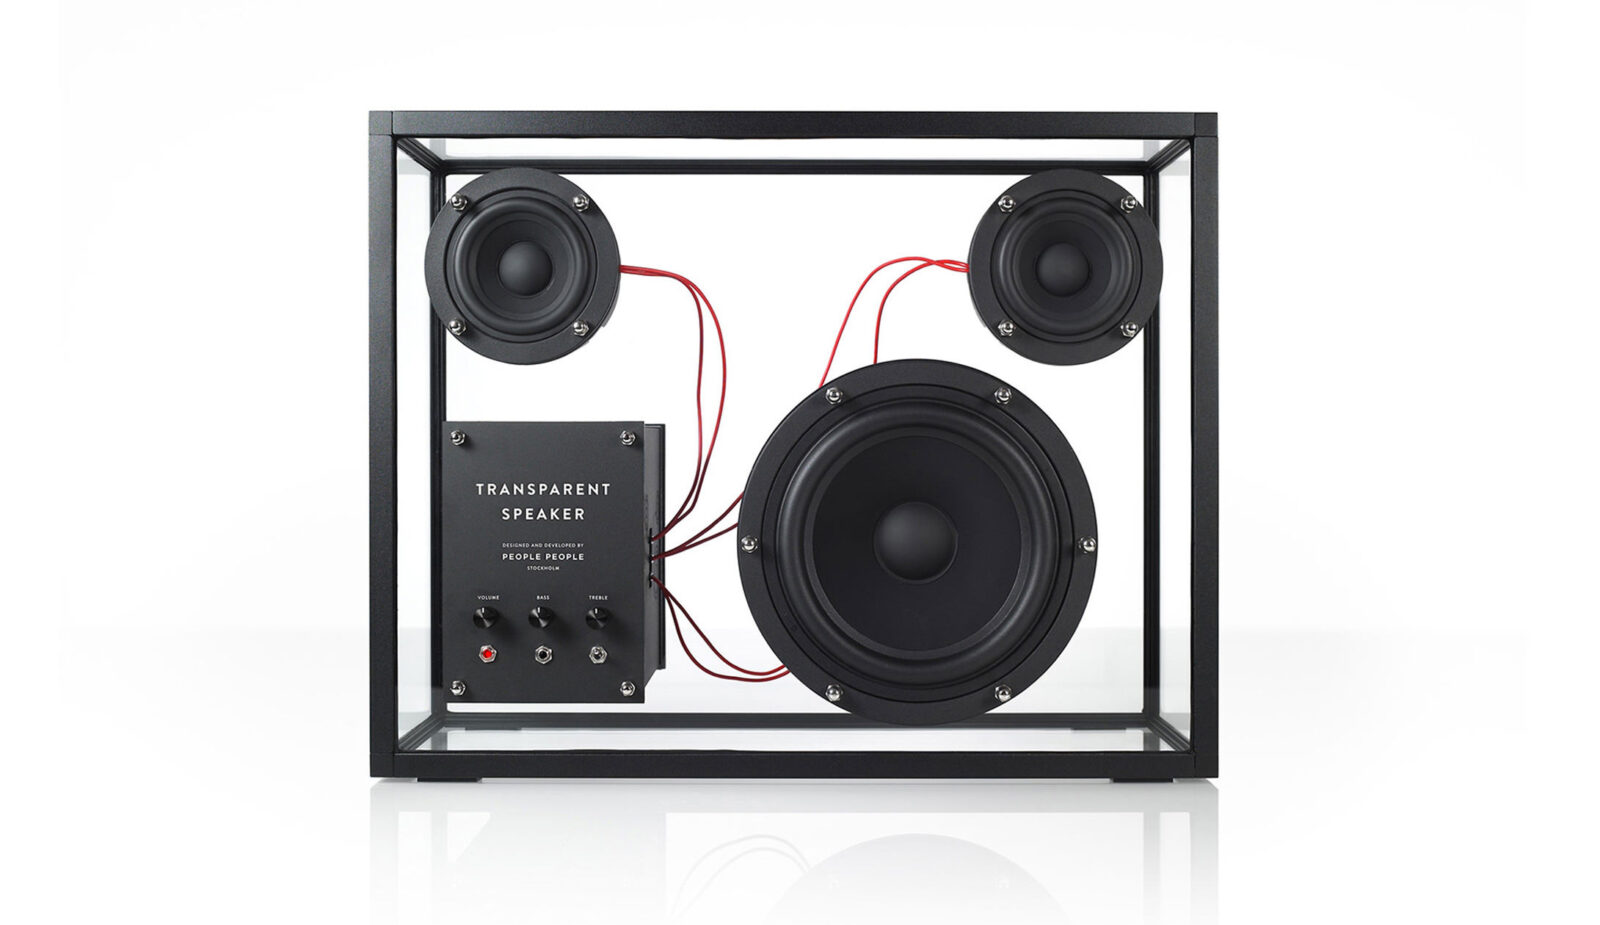 Transparent Speaker by People People 1600x925 - Transparent Speaker by People People